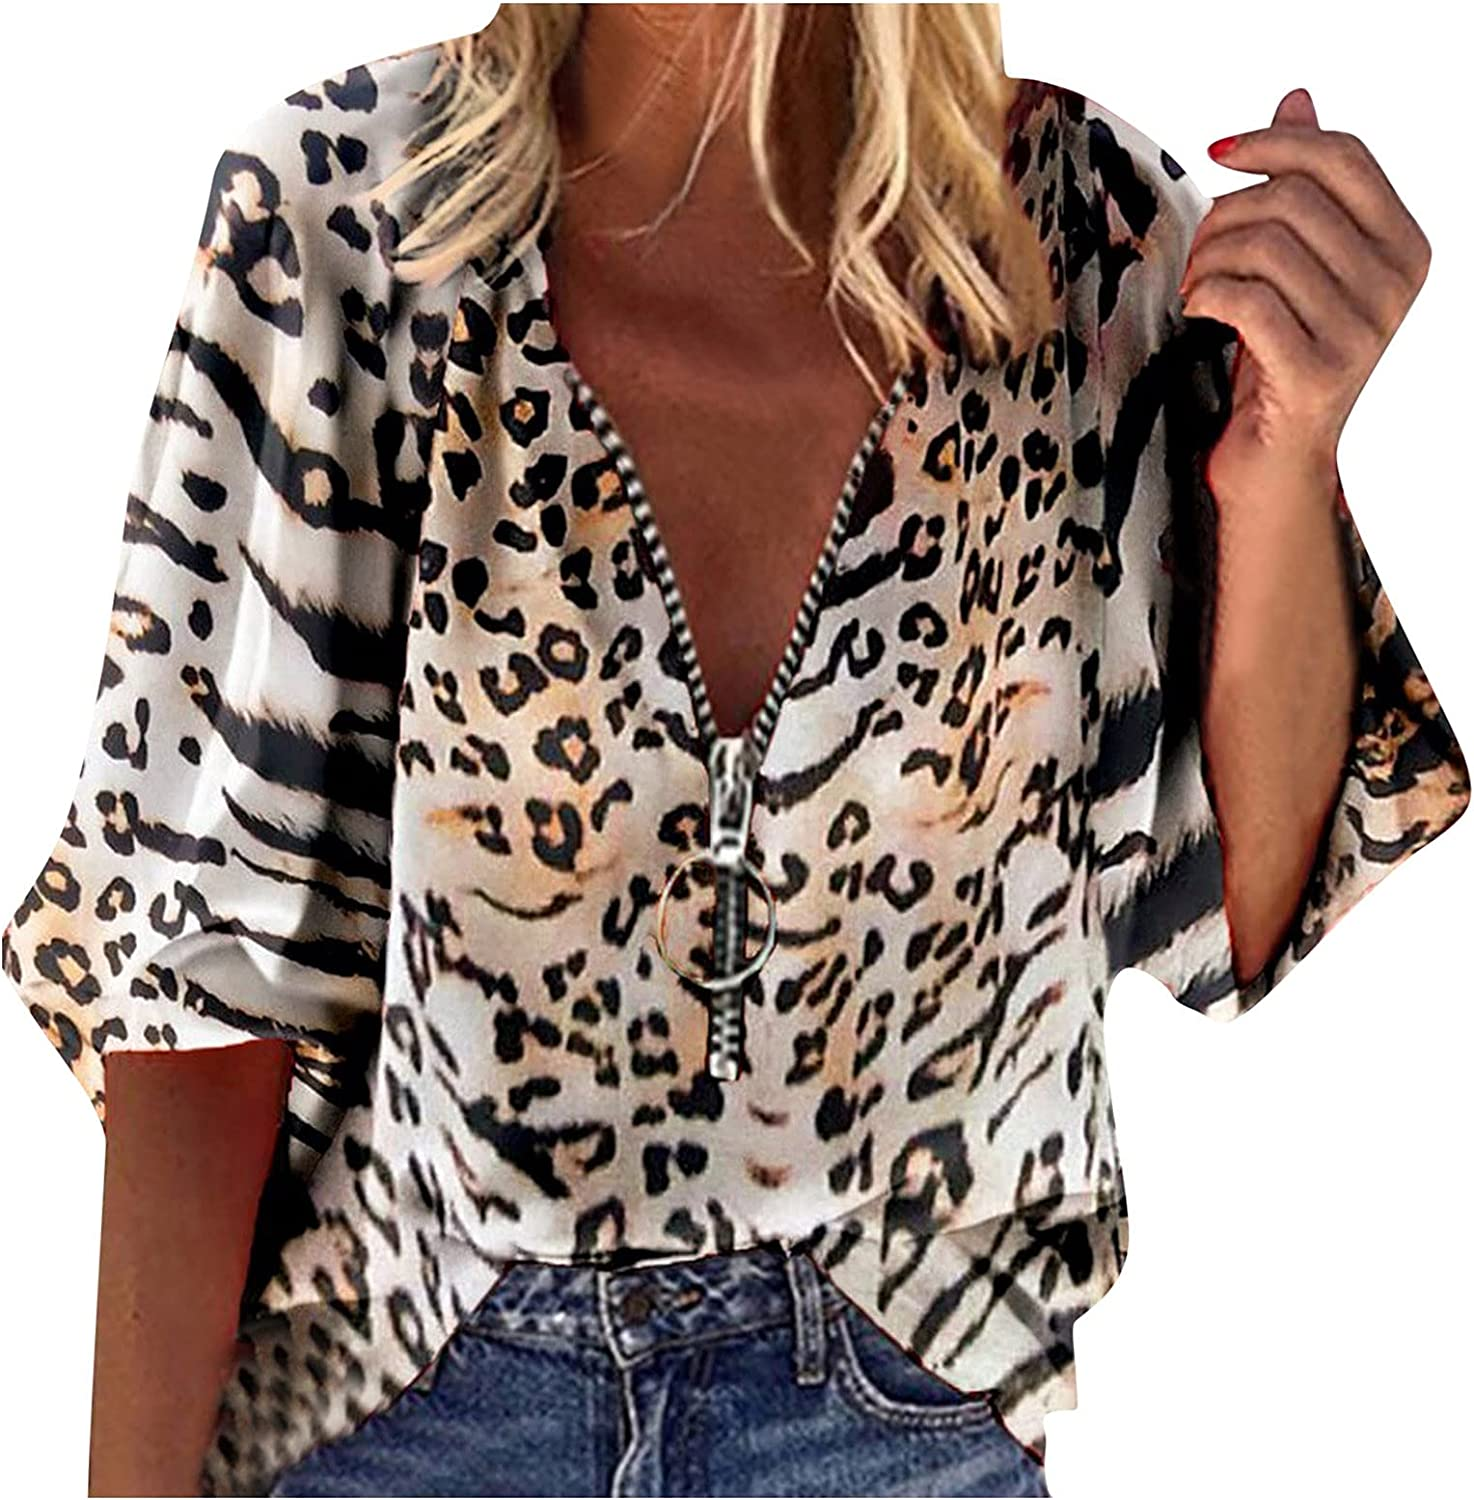 Leirke Womens Summer Top, Fashion 3/4 Sleeve Casual Cute Star Printed Tunic Tops, Loose Fit T-Shirt Zipper V-Neck Blouses Tee